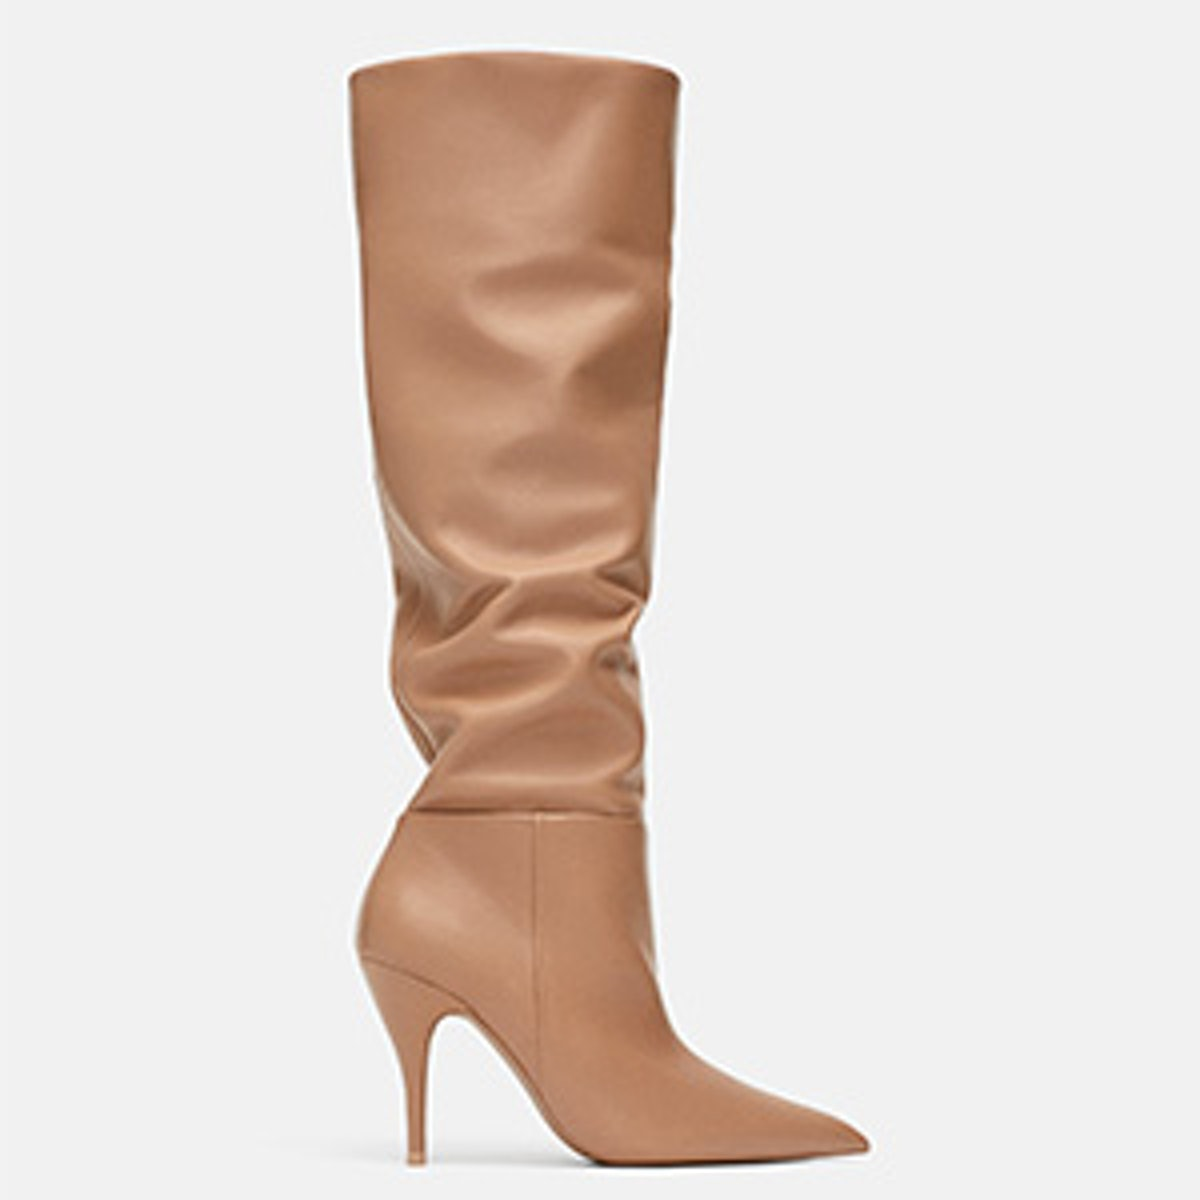 Soft Leather High Heeled Boots